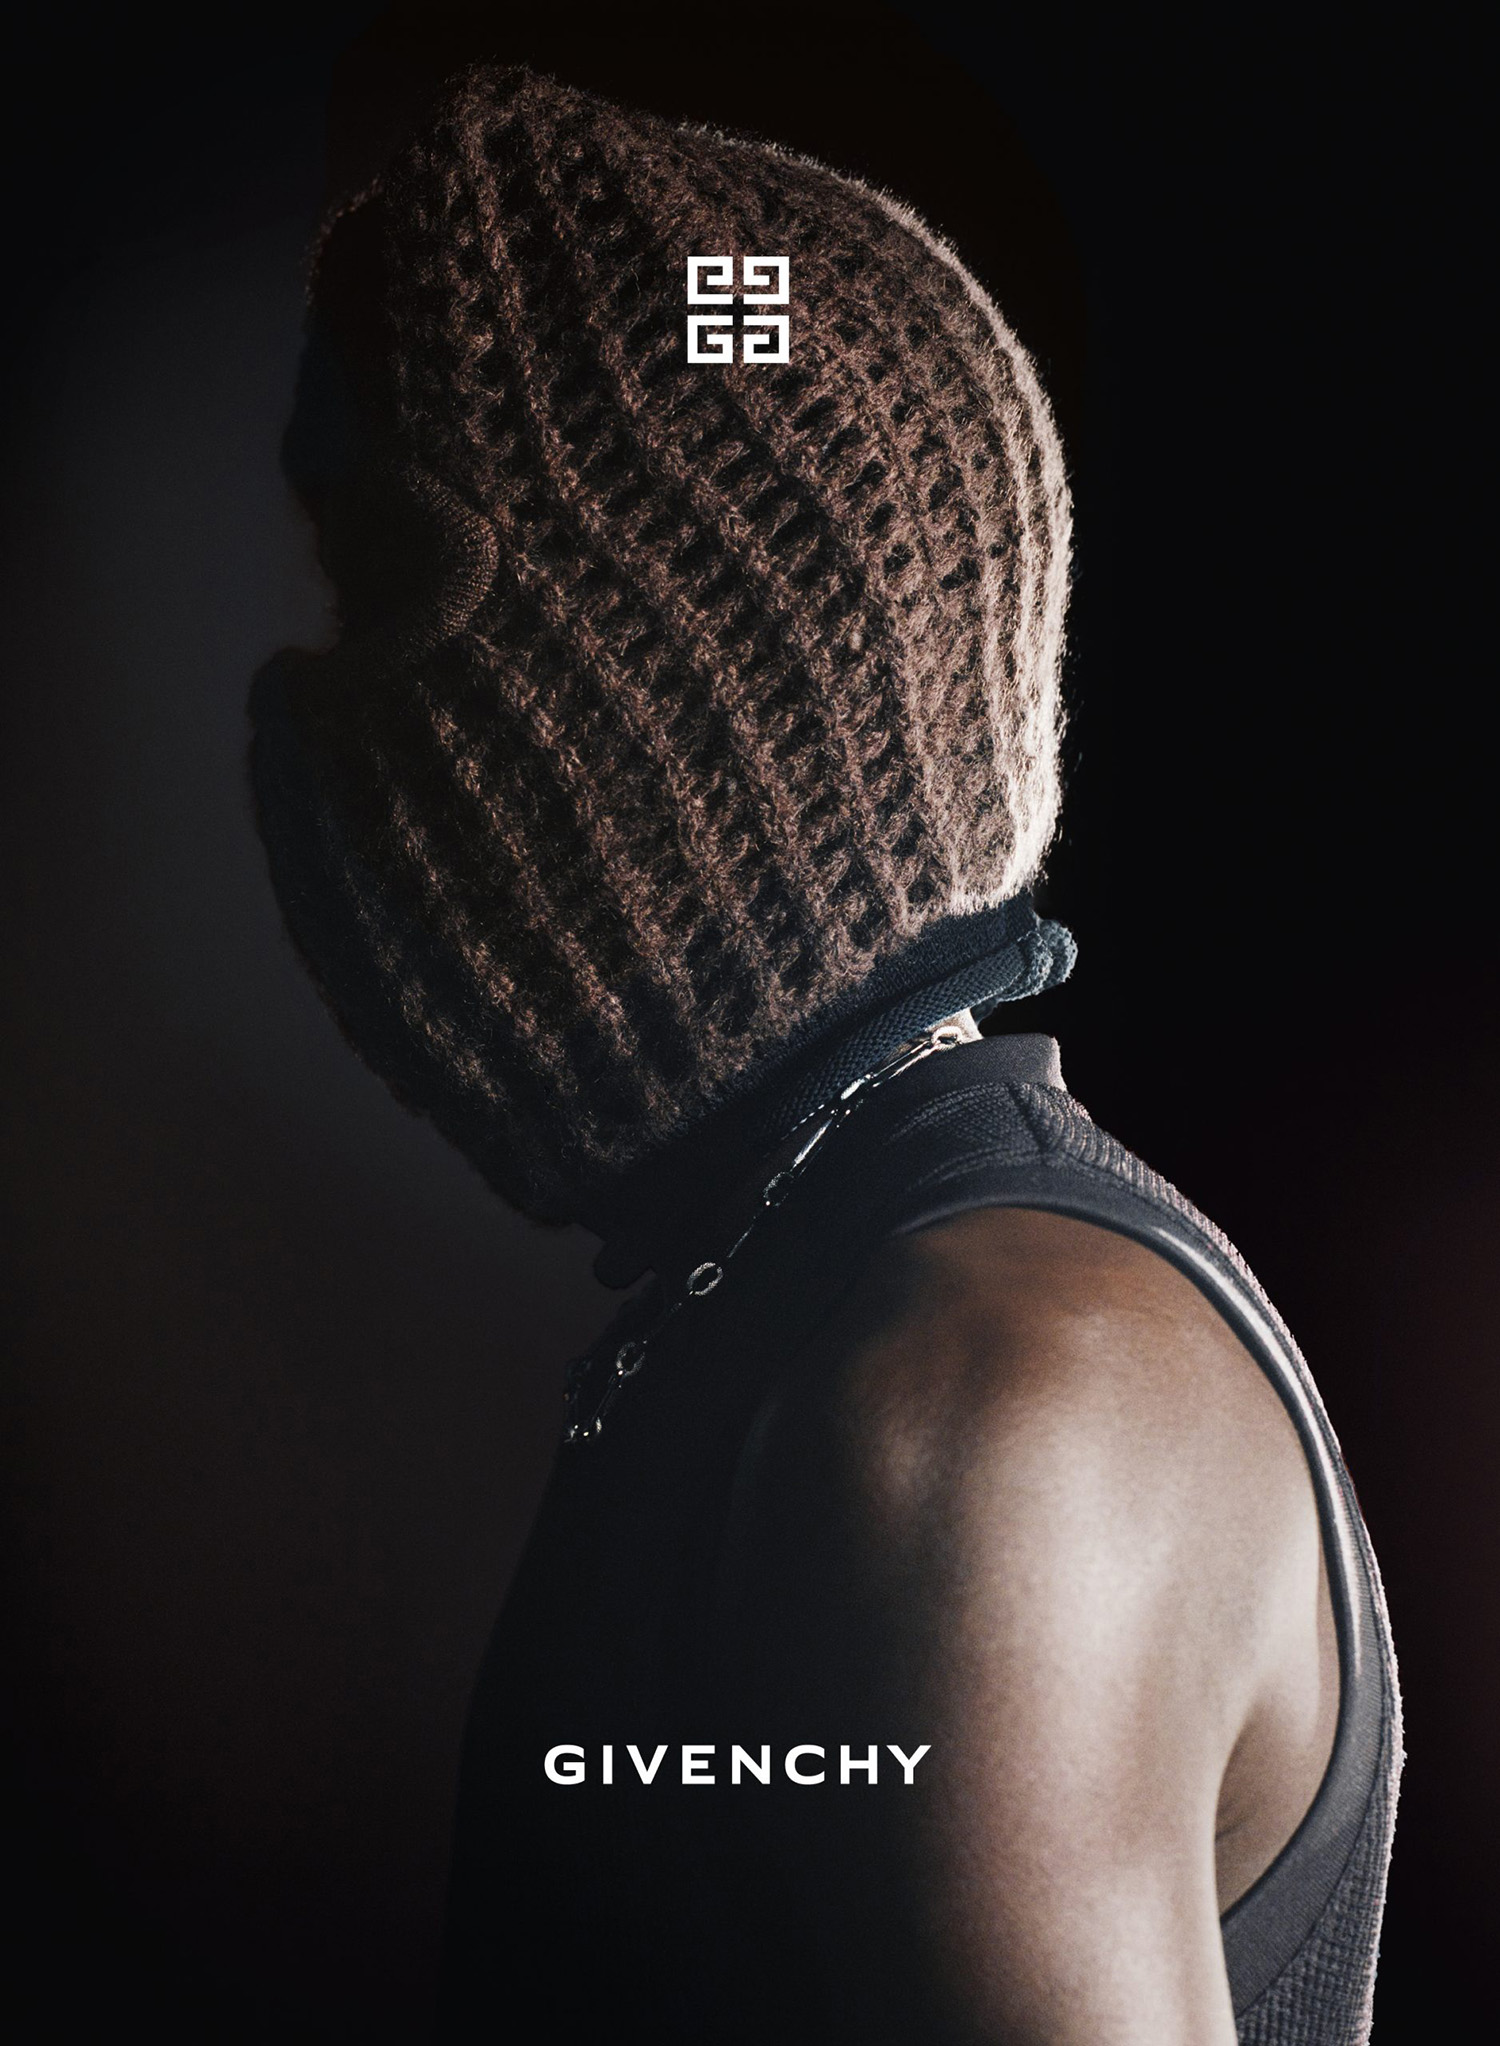 Givenchy Fall Winter 2021 Campaign